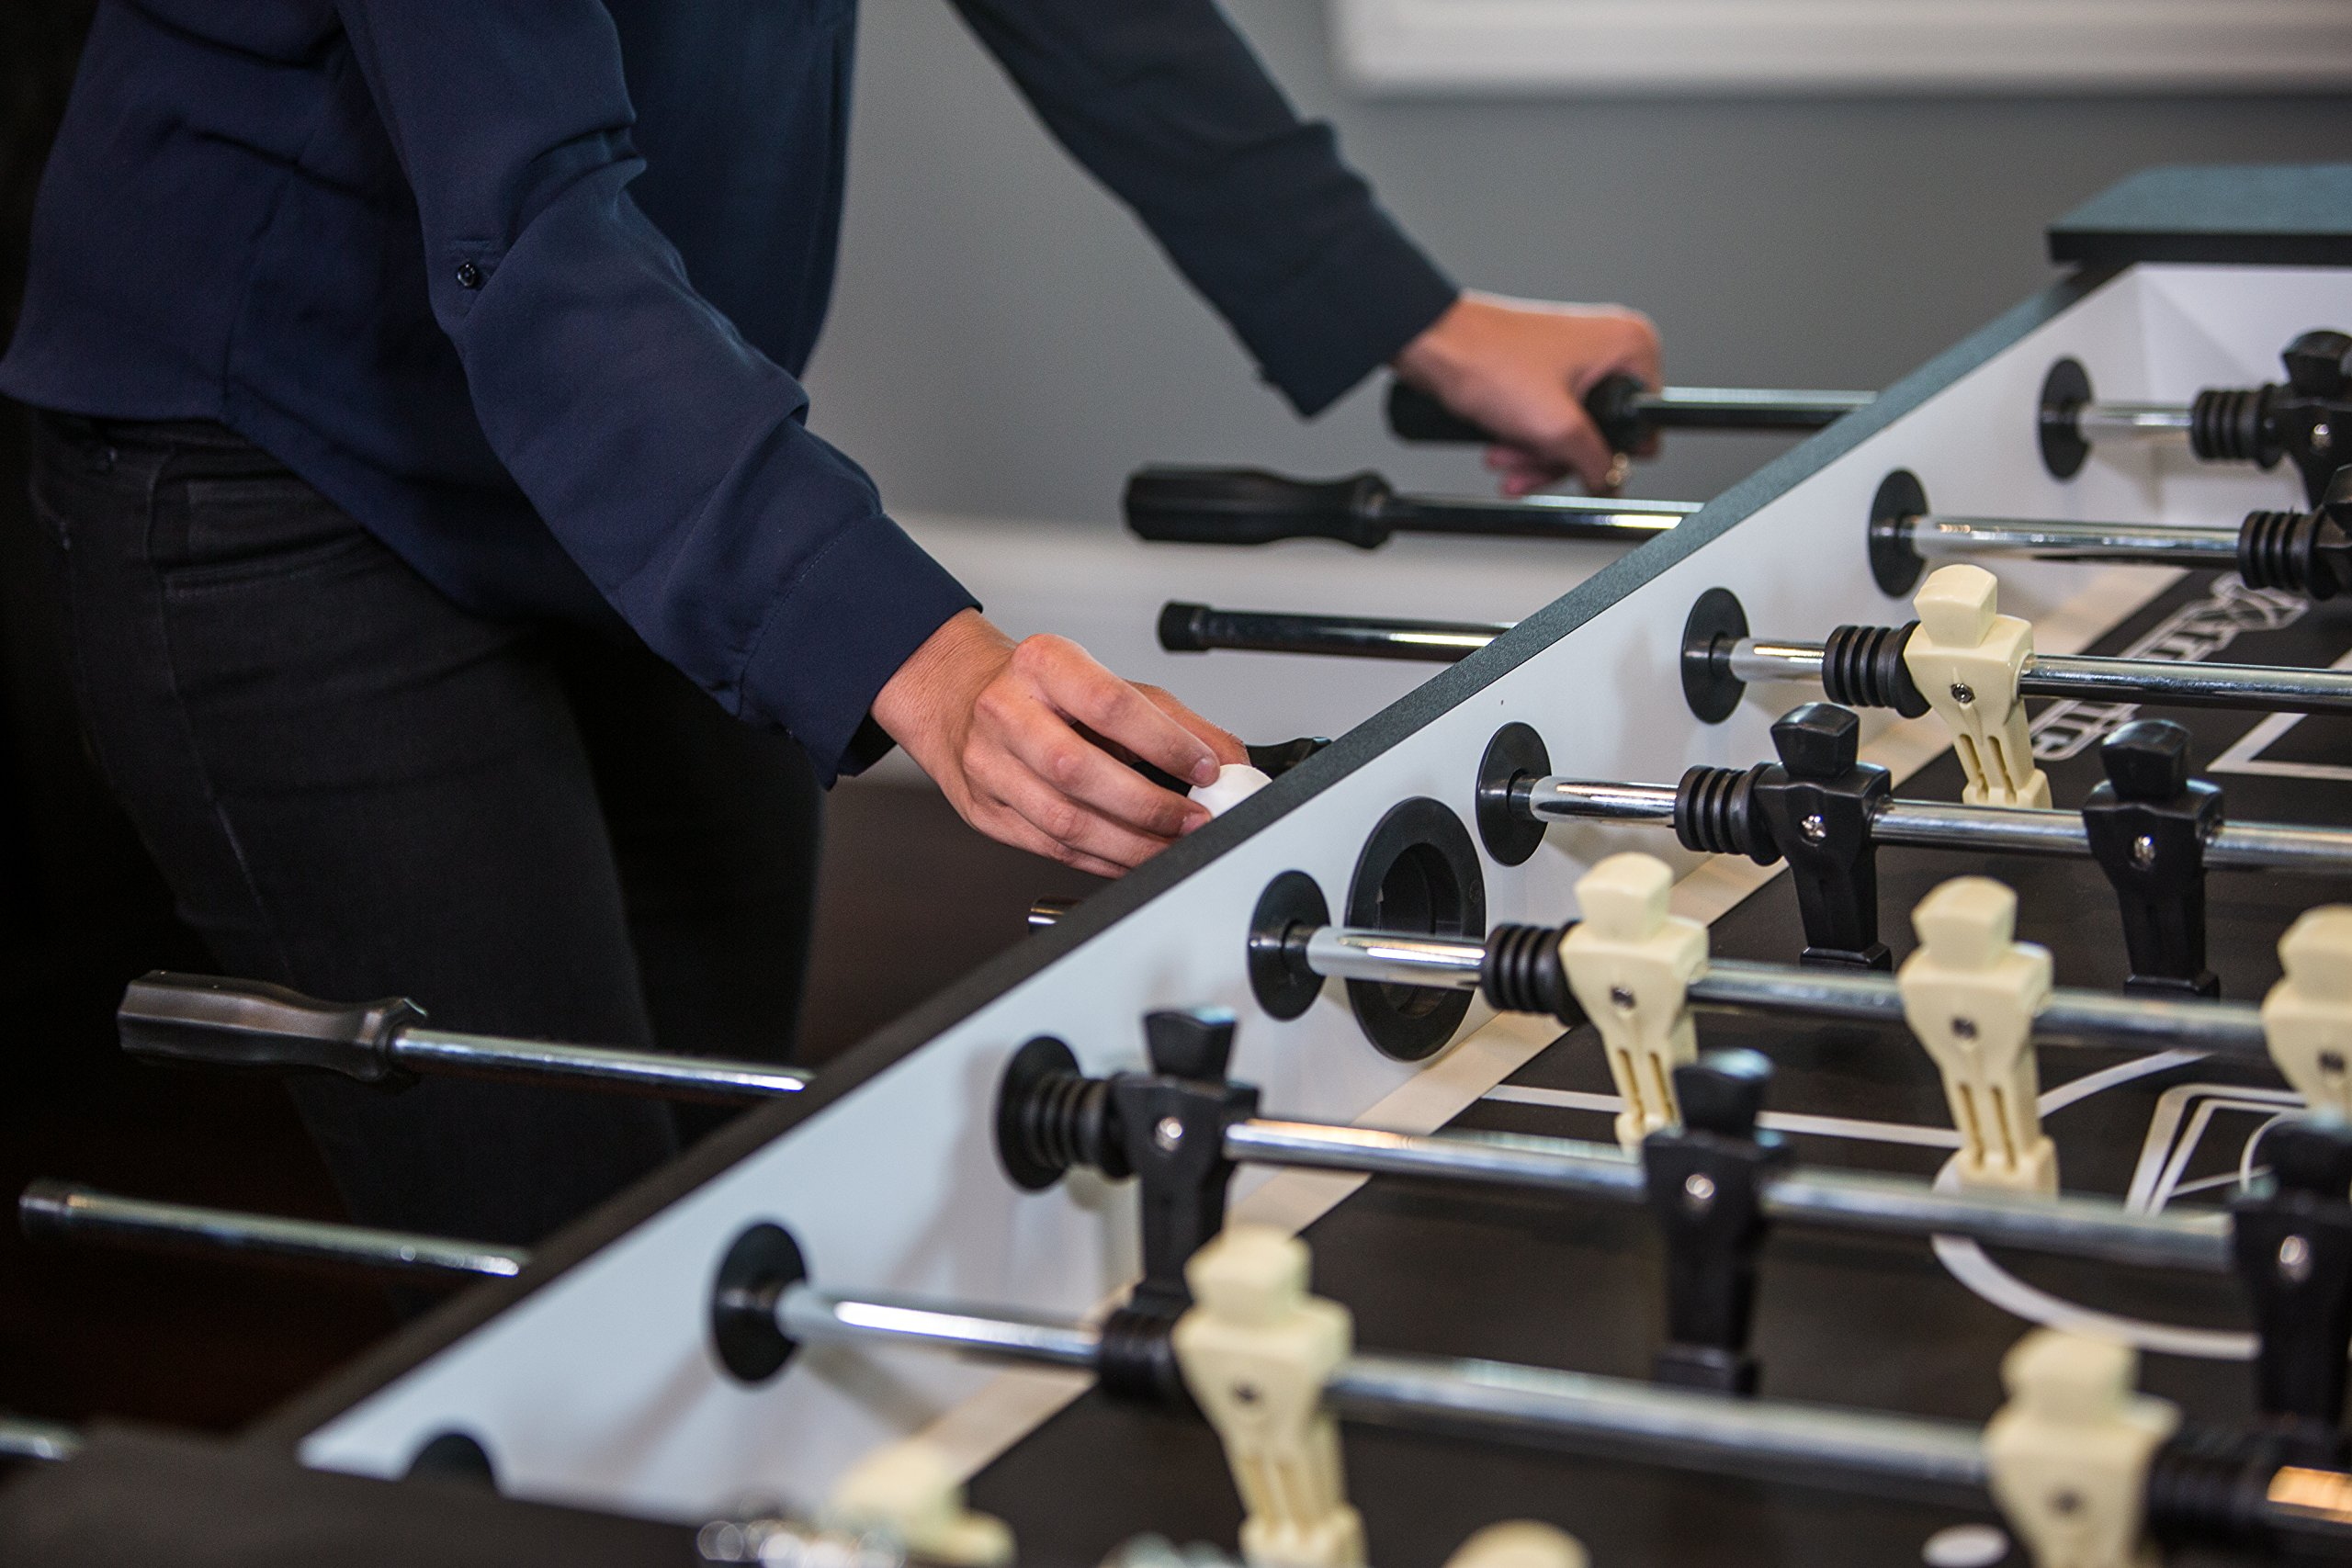 4. Atomic pro Force Foosball Table